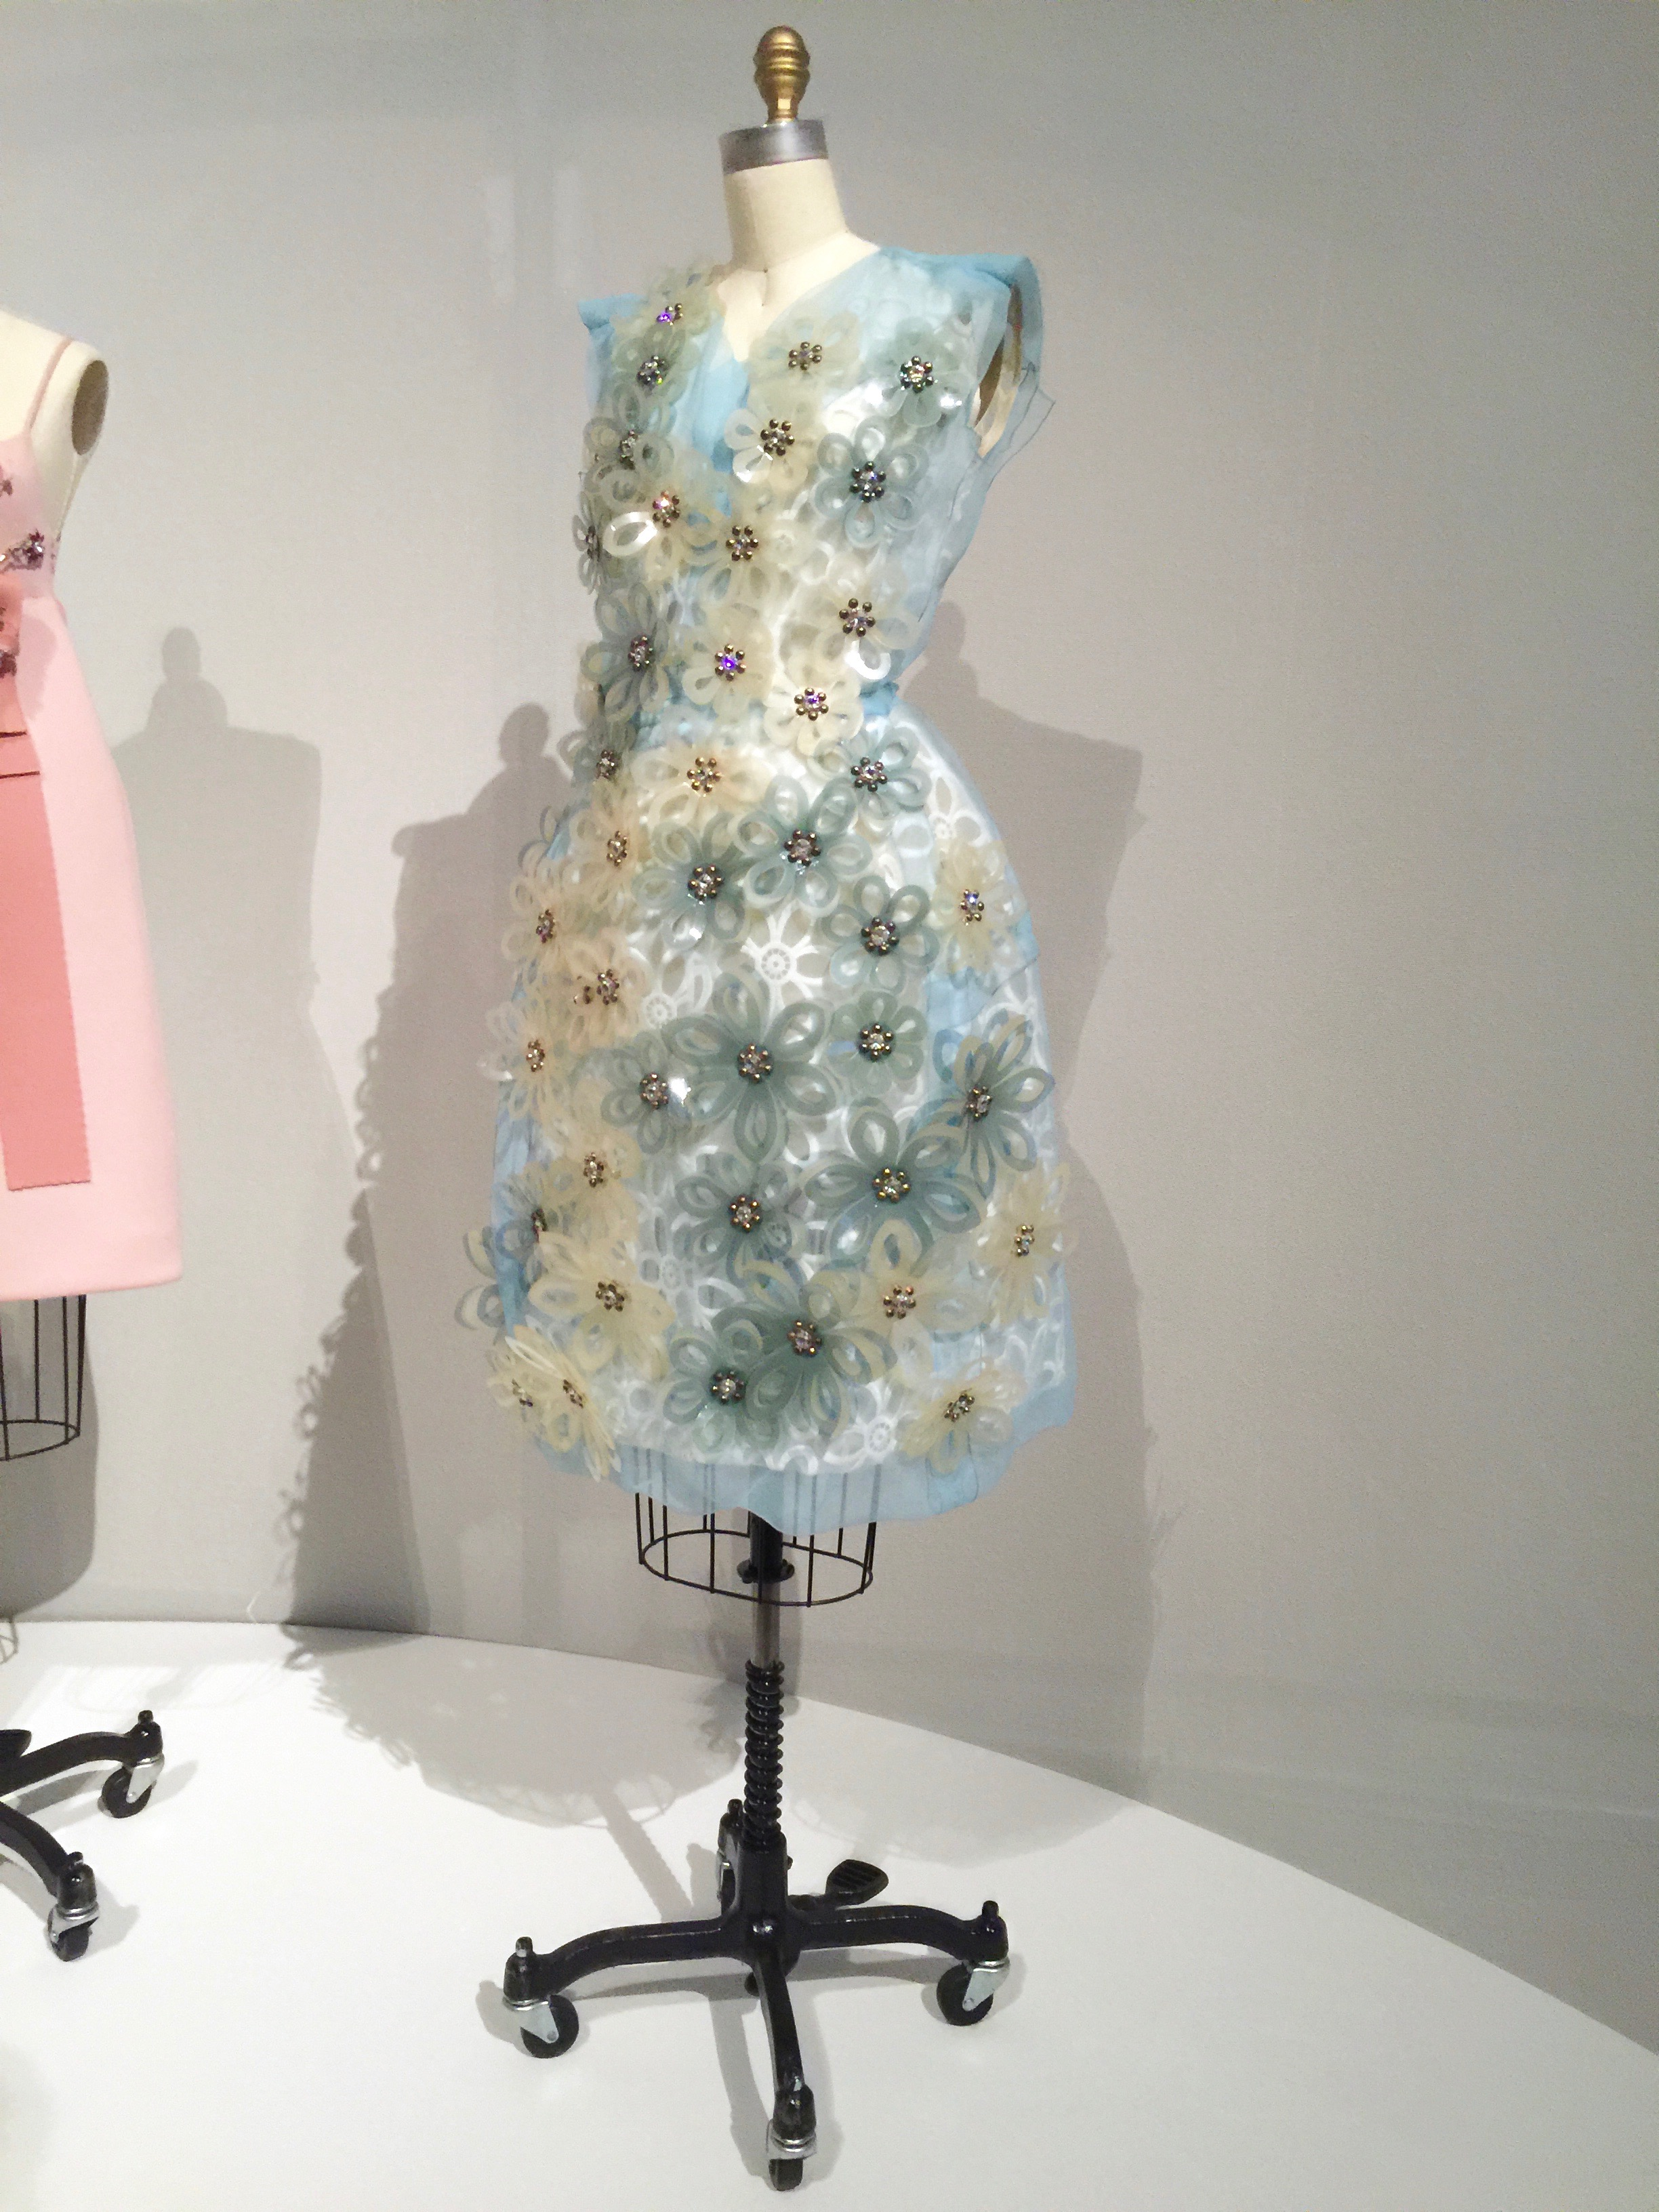 LOUIS VUITTON, Marc Jacobs  DRESS, Spring/Summer 2012, prêt-à-porter  Dress:  machine-sewn blue silk-polyester crinkle organza, hand-embroidered with laser-cut white and blue plastic flowers, grommeted with clear crystals and silver metal studs, hand-finished; Slip:  machine-sewn white polyester organdy with machine-made broderie anglaise flowers